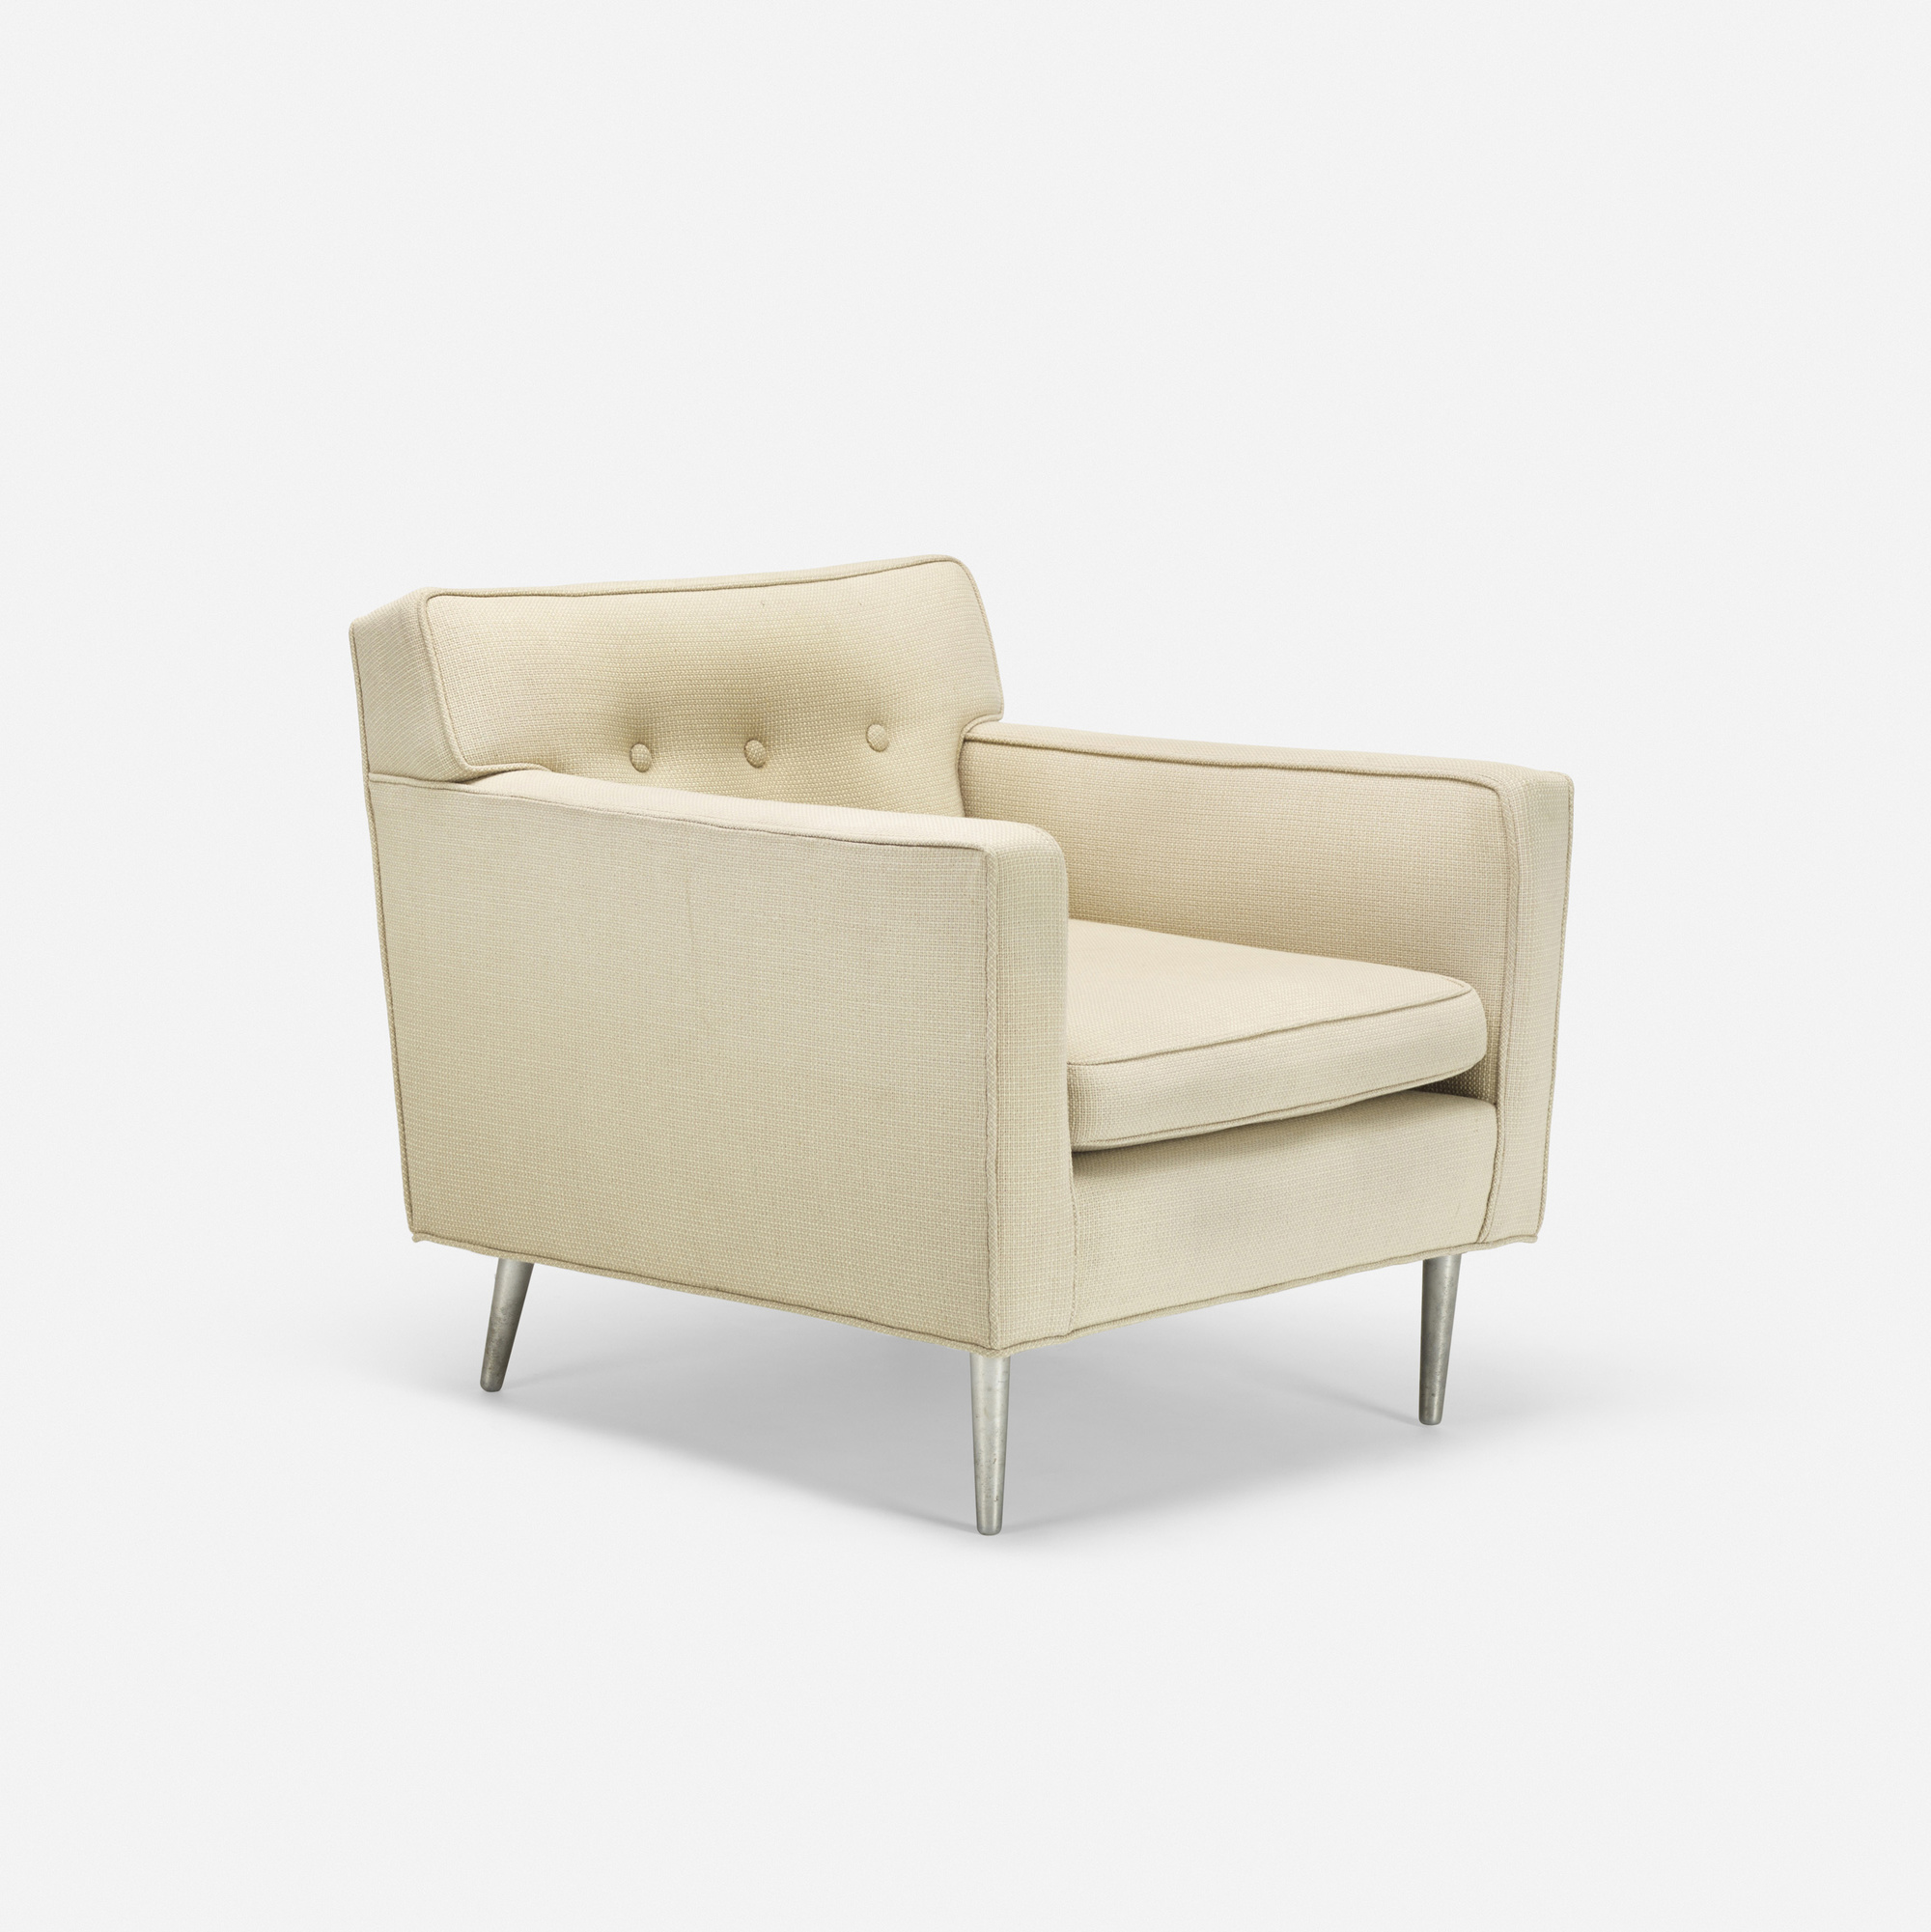 596: Modern / lounge chair (1 of 3)